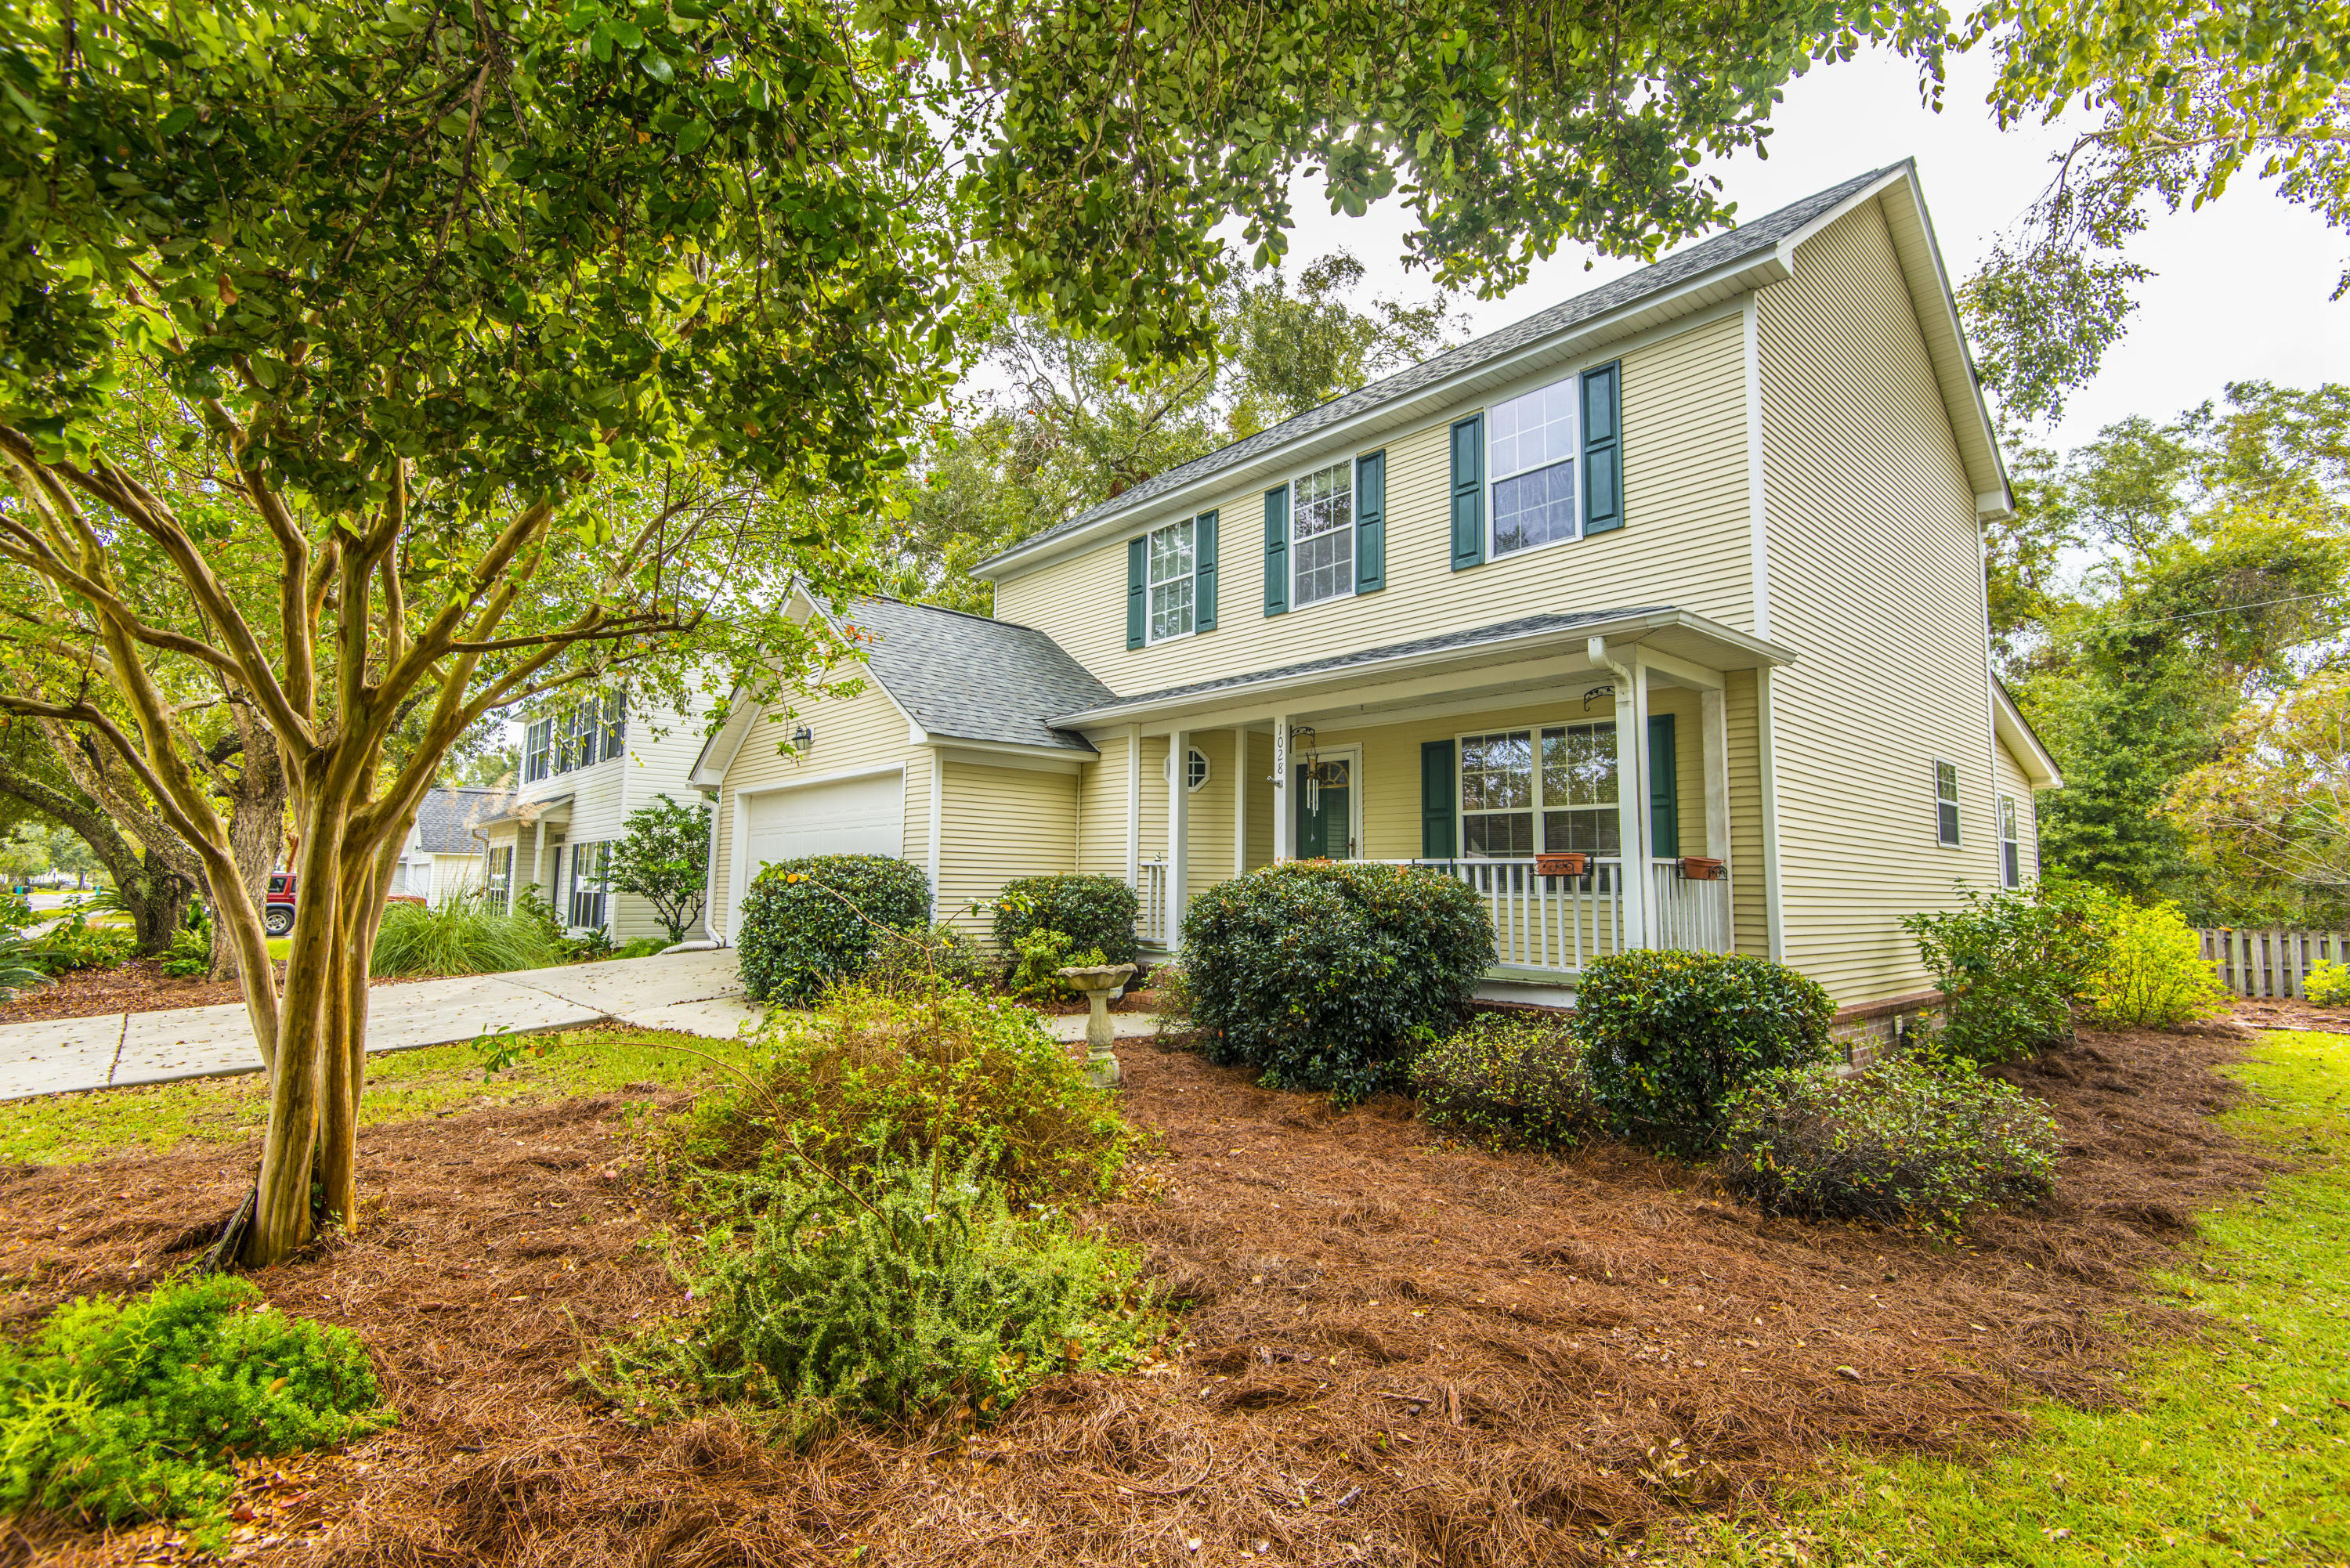 Home for sale 1028 Wayfarer Lane, Bayview Farms, James Island, SC